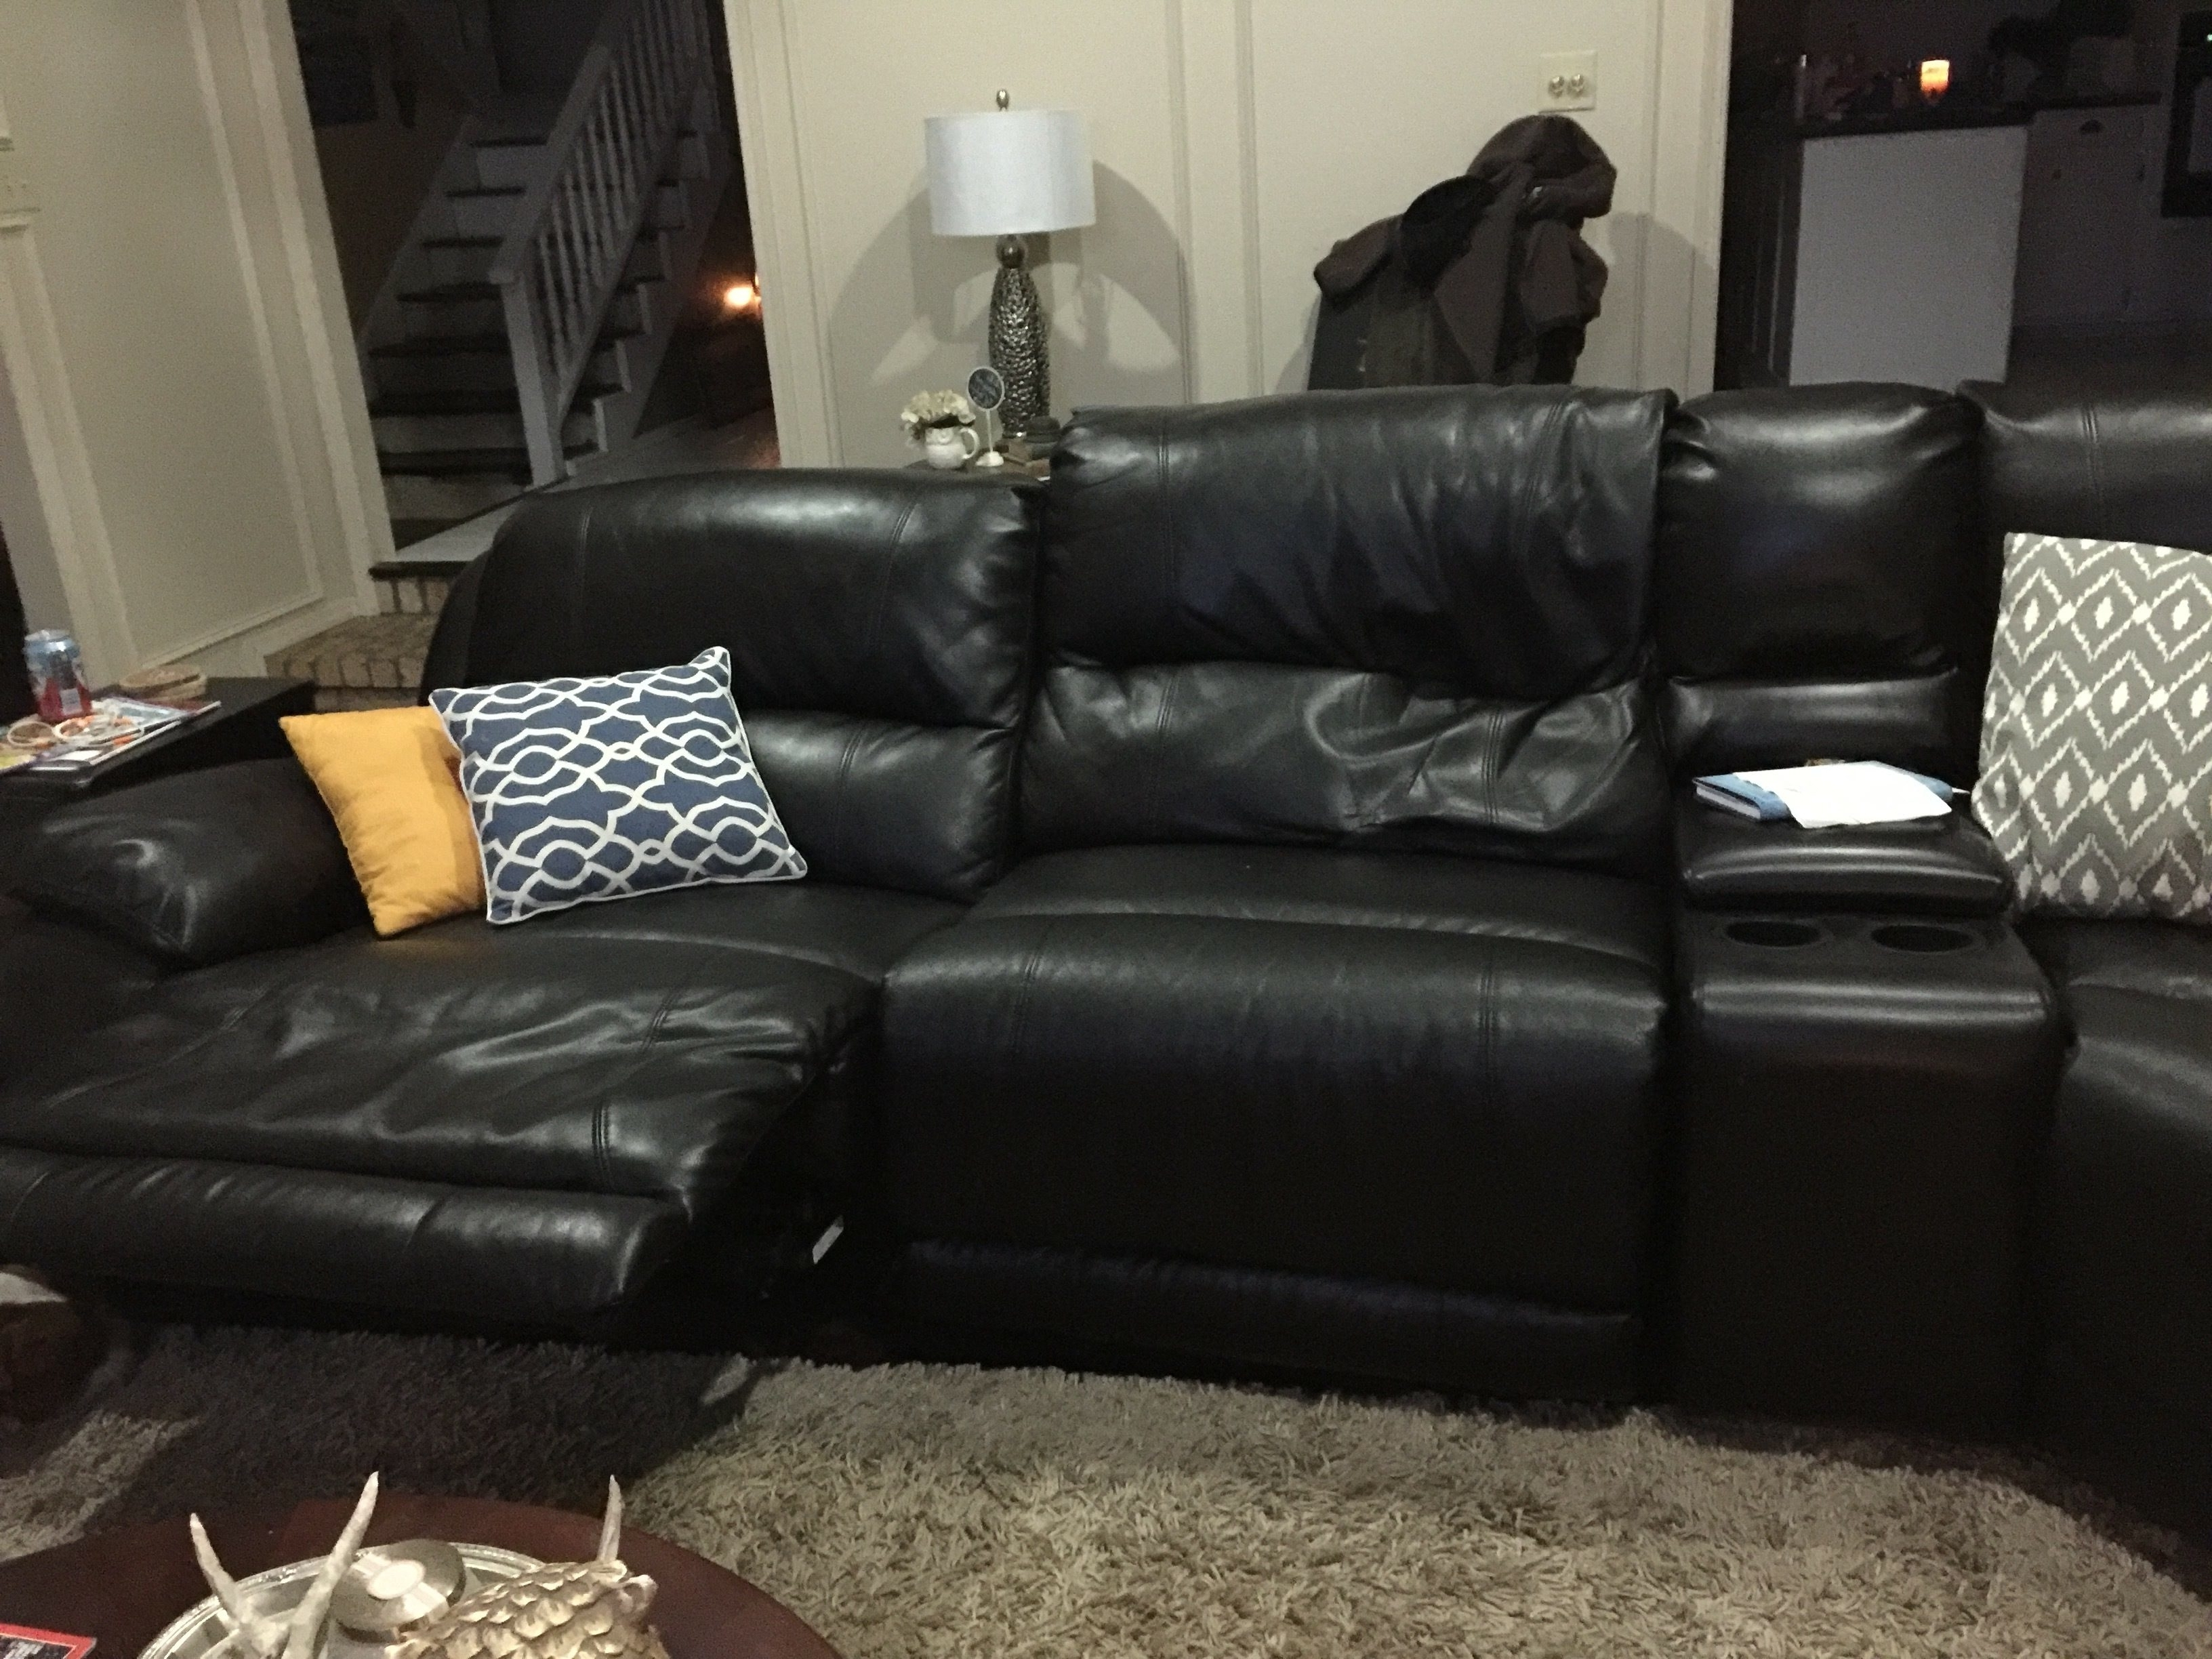 Fashionable Craigslist Leather Sofas Within Trend Craigslist Leather Sofa 31 About Remodel Living Room Sofa (View 2 of 15)